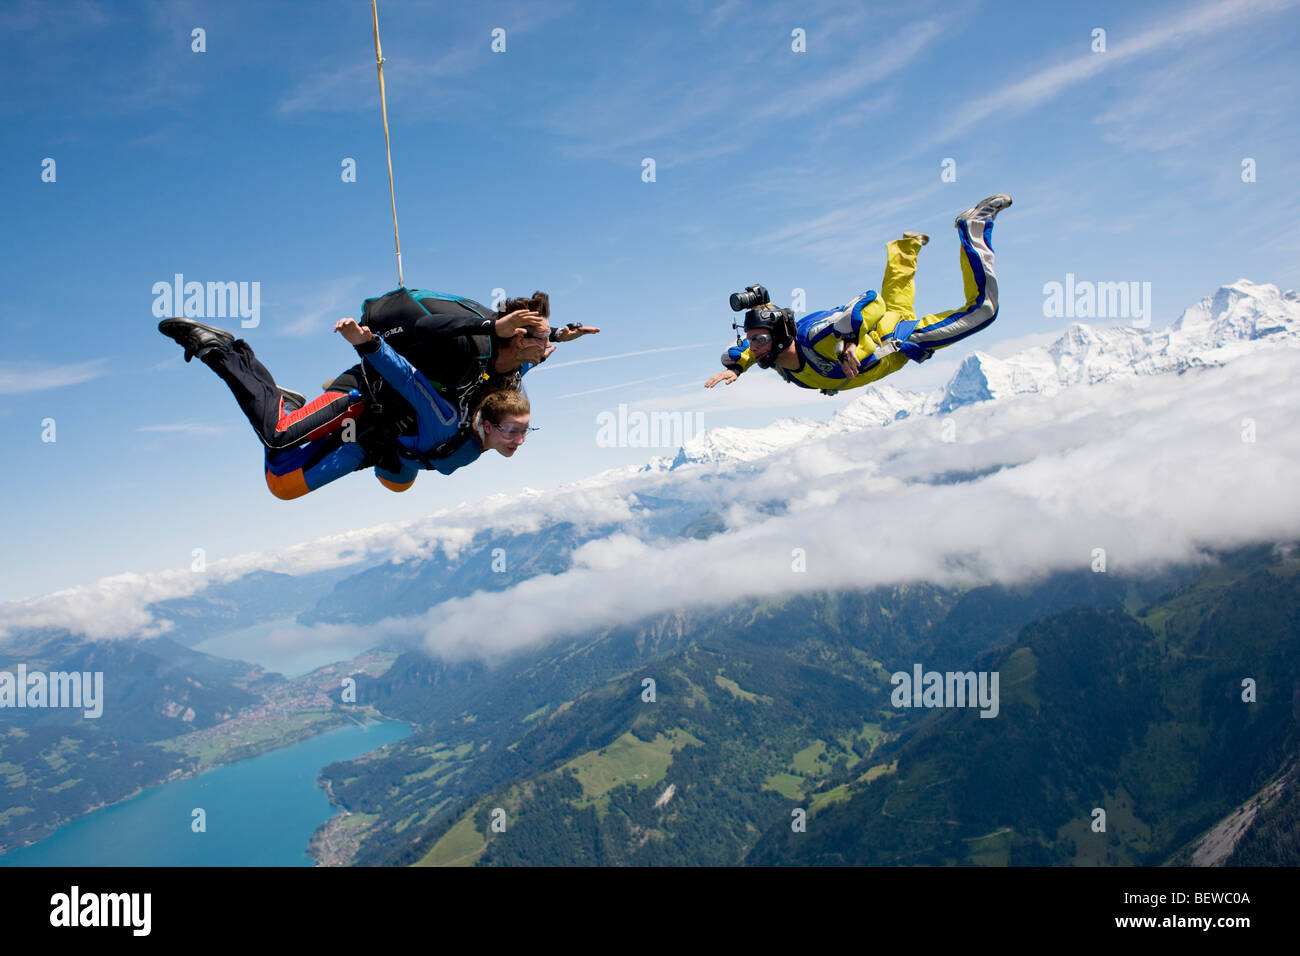 two people doing parachute jumping, full shot - Stock Image